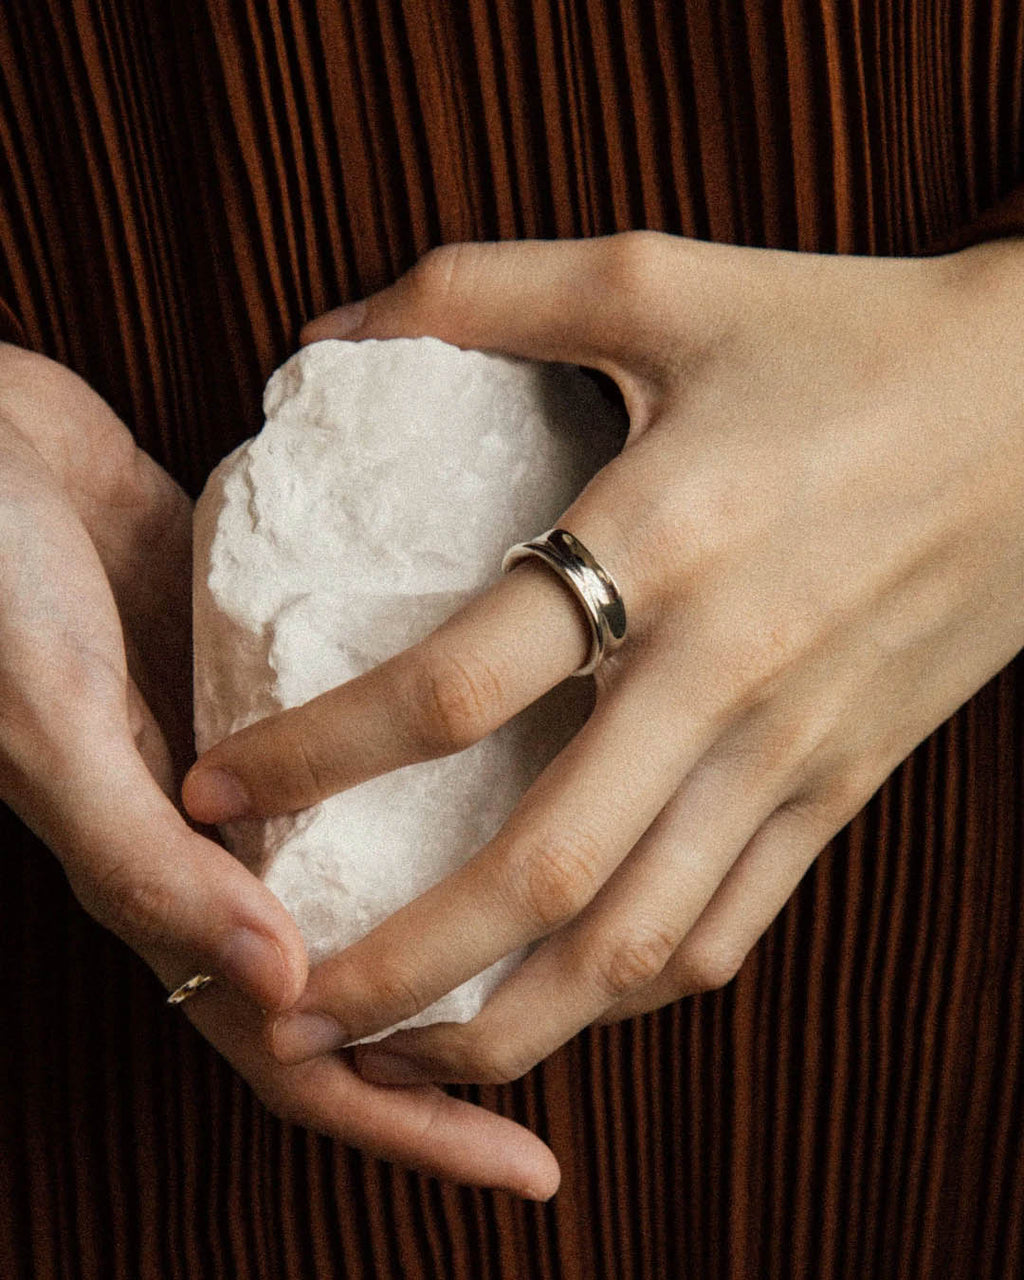 the squish ring is made from an organic shape that looks different from every angle